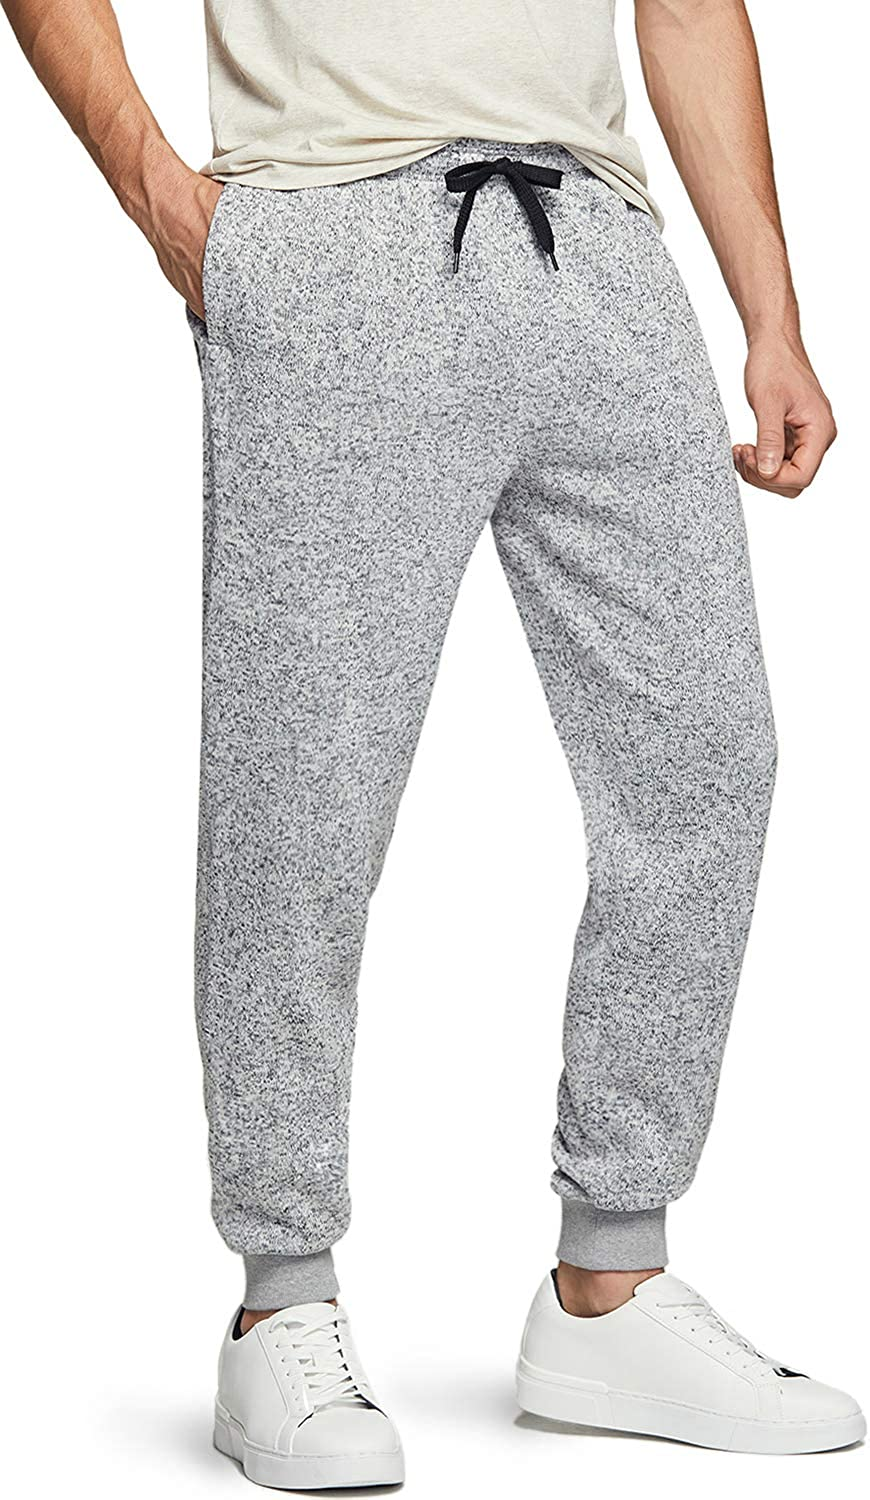 TSLA Men's Winter Fleece Jogger Pants, Athletic Sports Sweatpants, Running Tapered Sweatpants with Pockets